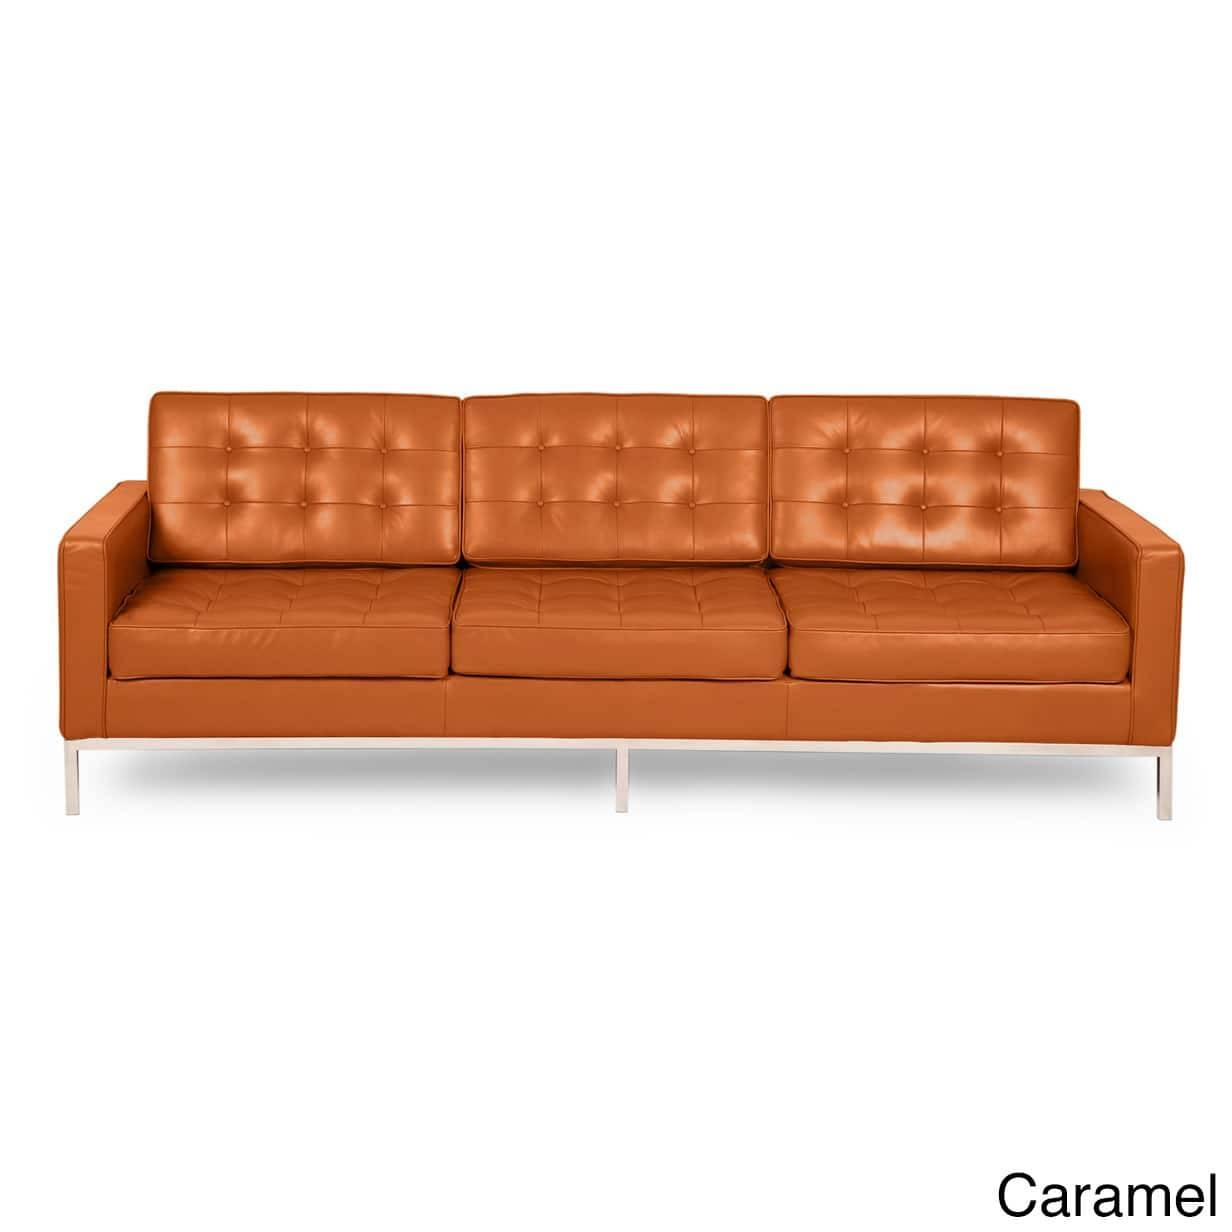 Kardiel Florence Knoll Style Sofa 3 Seat, Aniline Premium Leather throughout Florence Knoll Style Sofas (Image 20 of 25)